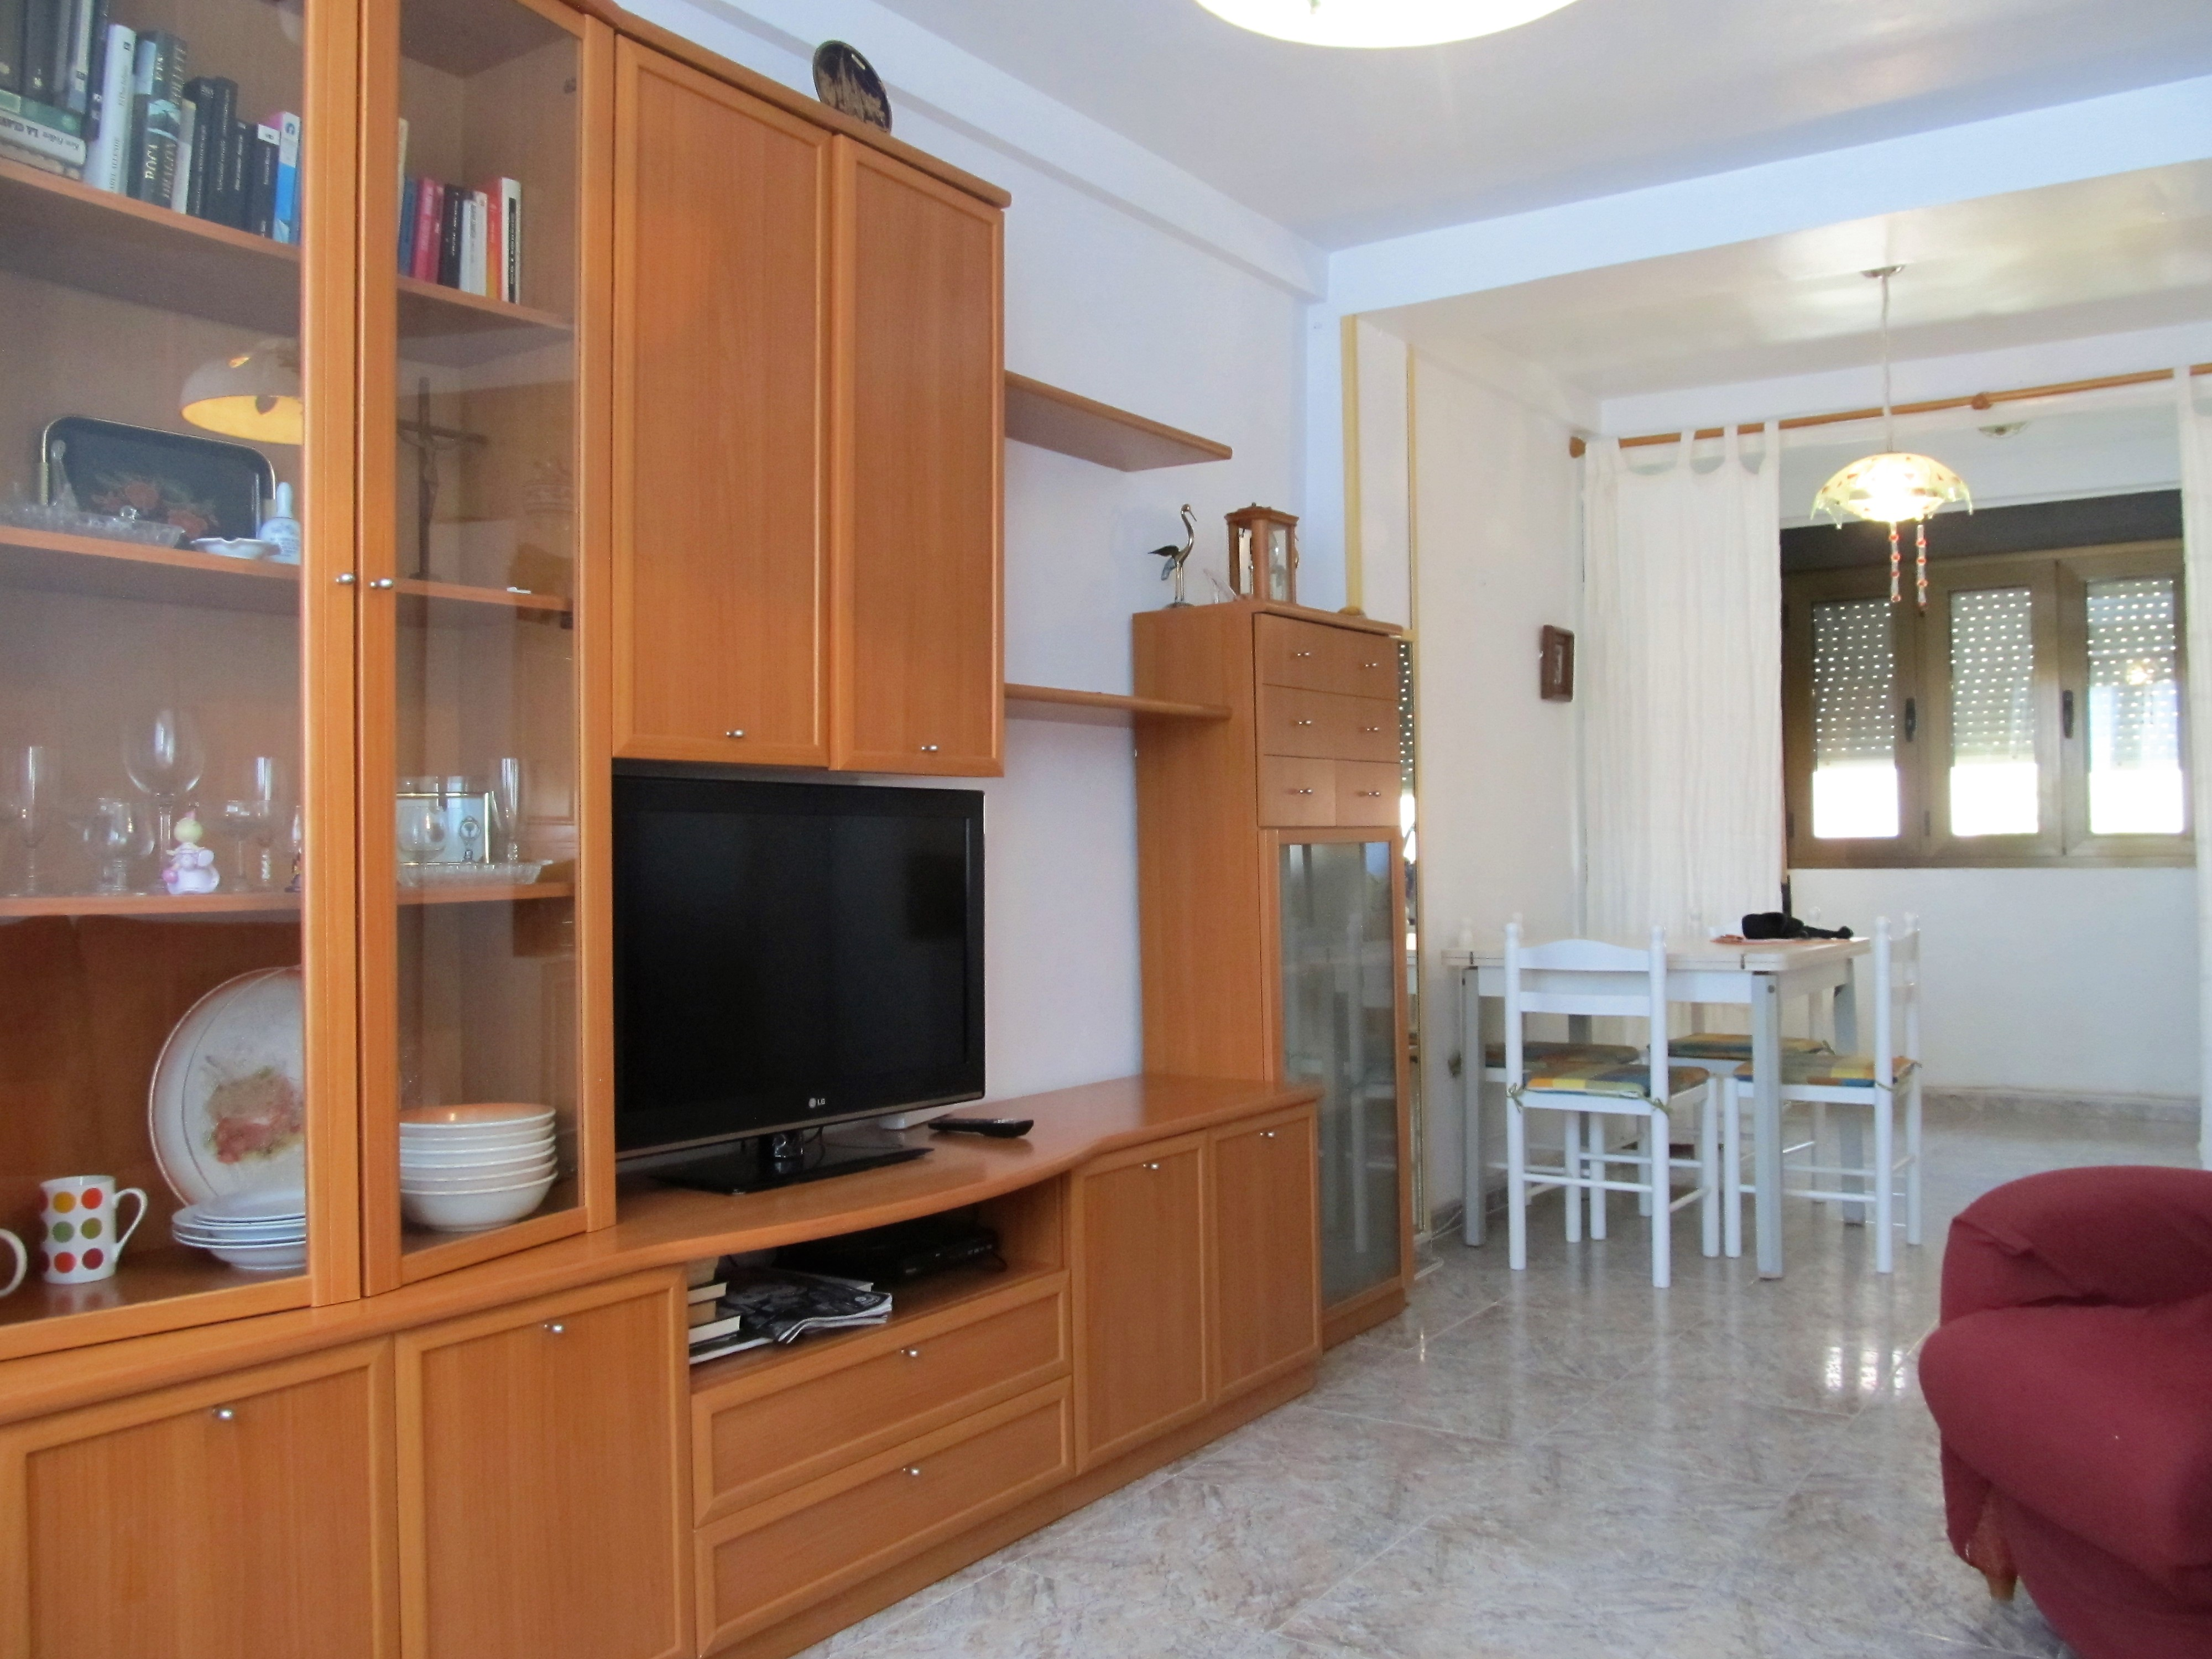 Two-bedroom apartment in Plaza Bohemia